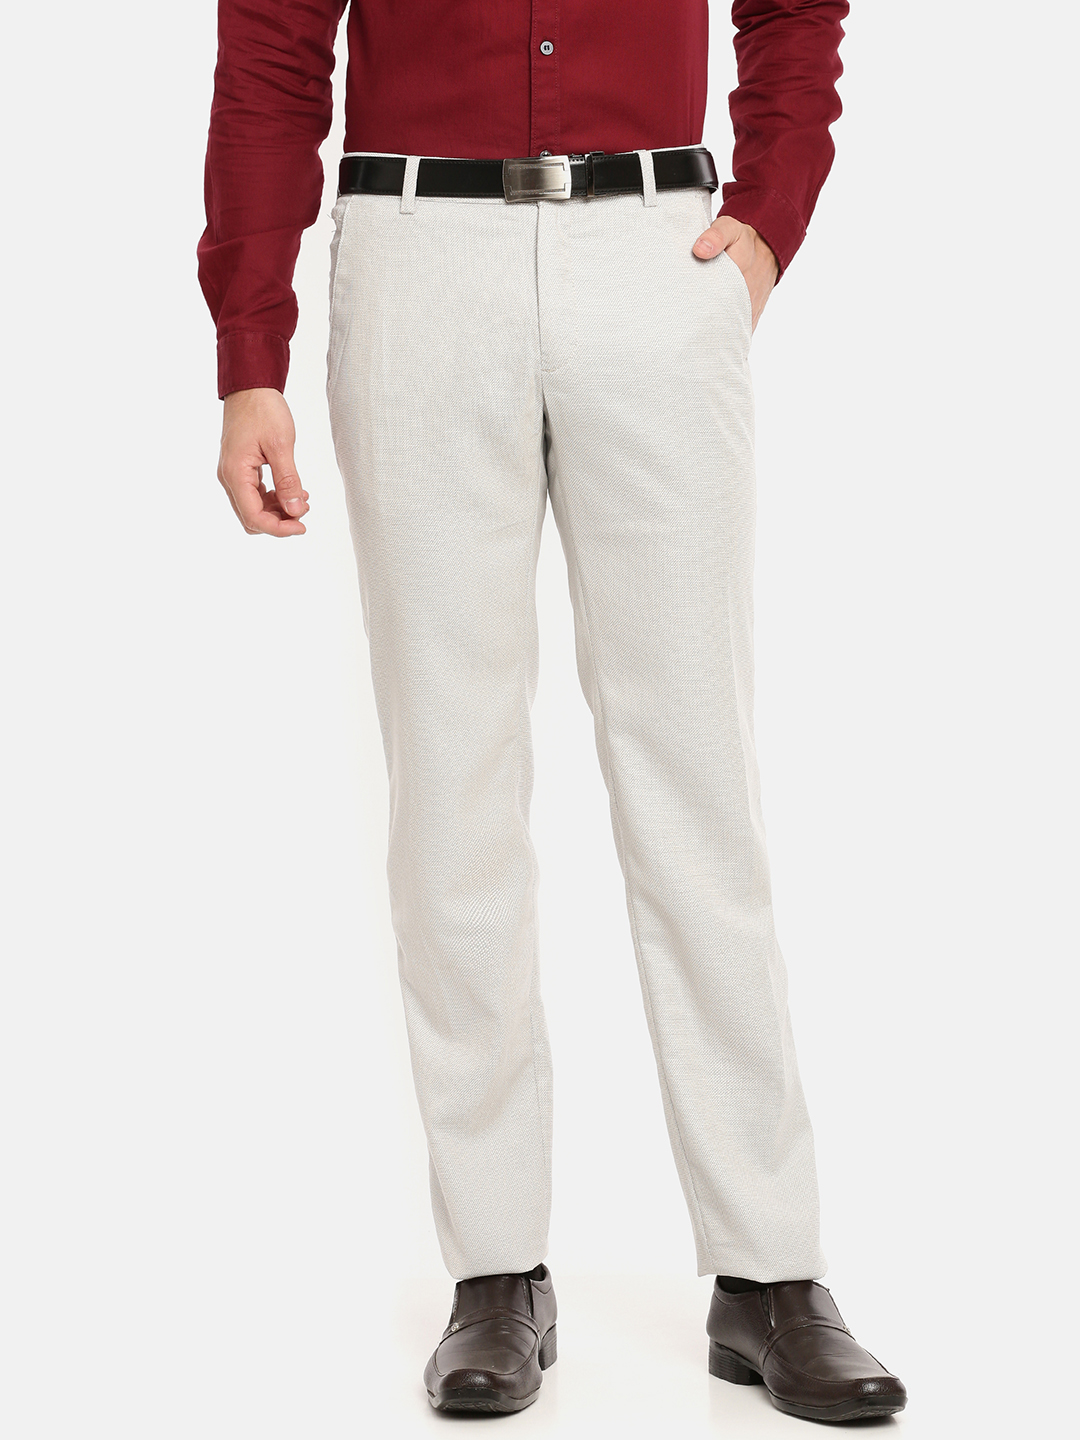 Chennis | Chennis Mens Formal Trousers